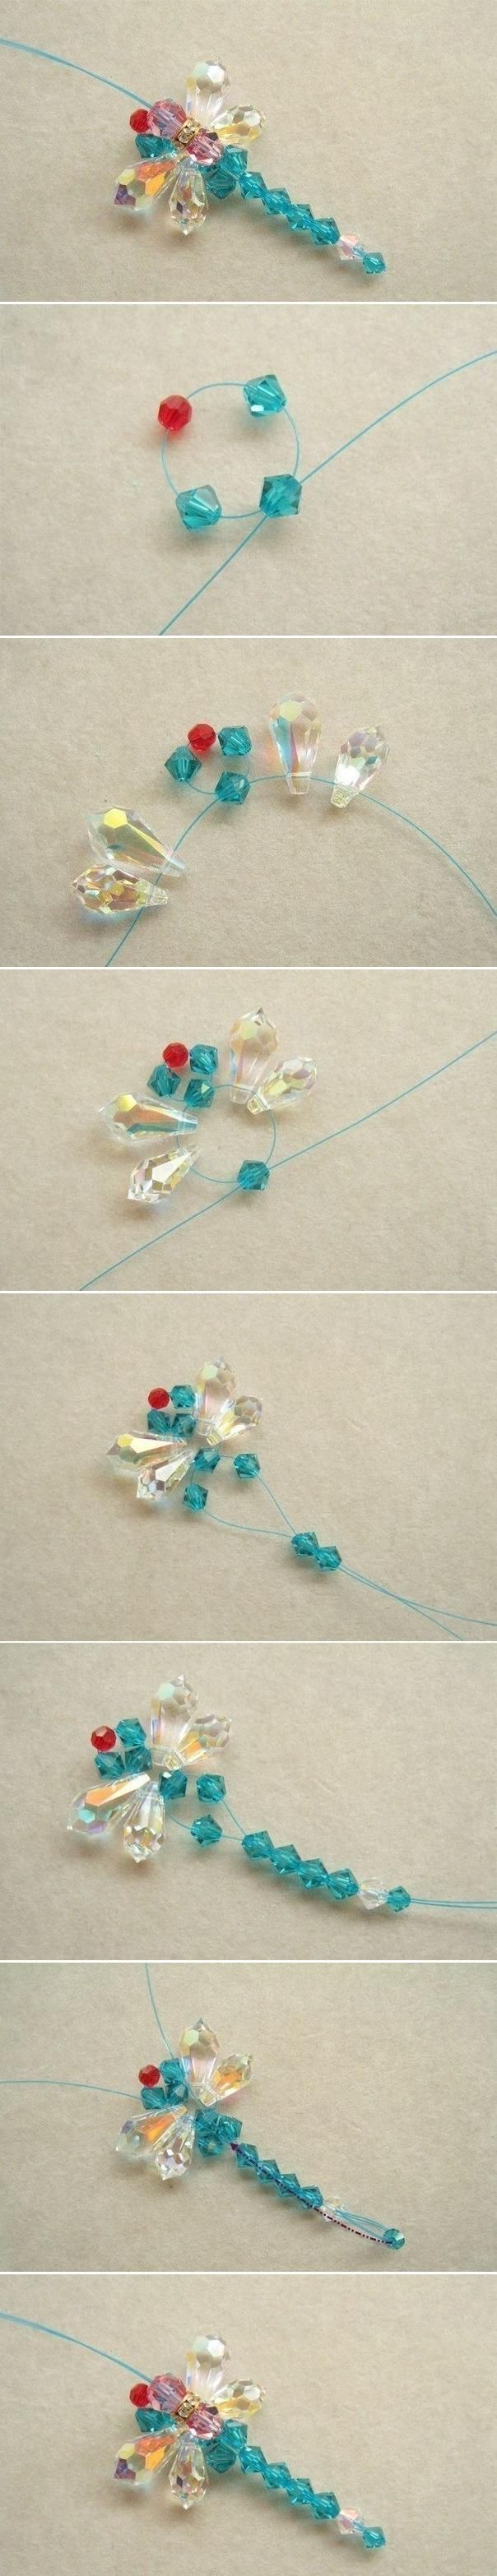 DIY Beaded Dragonfly